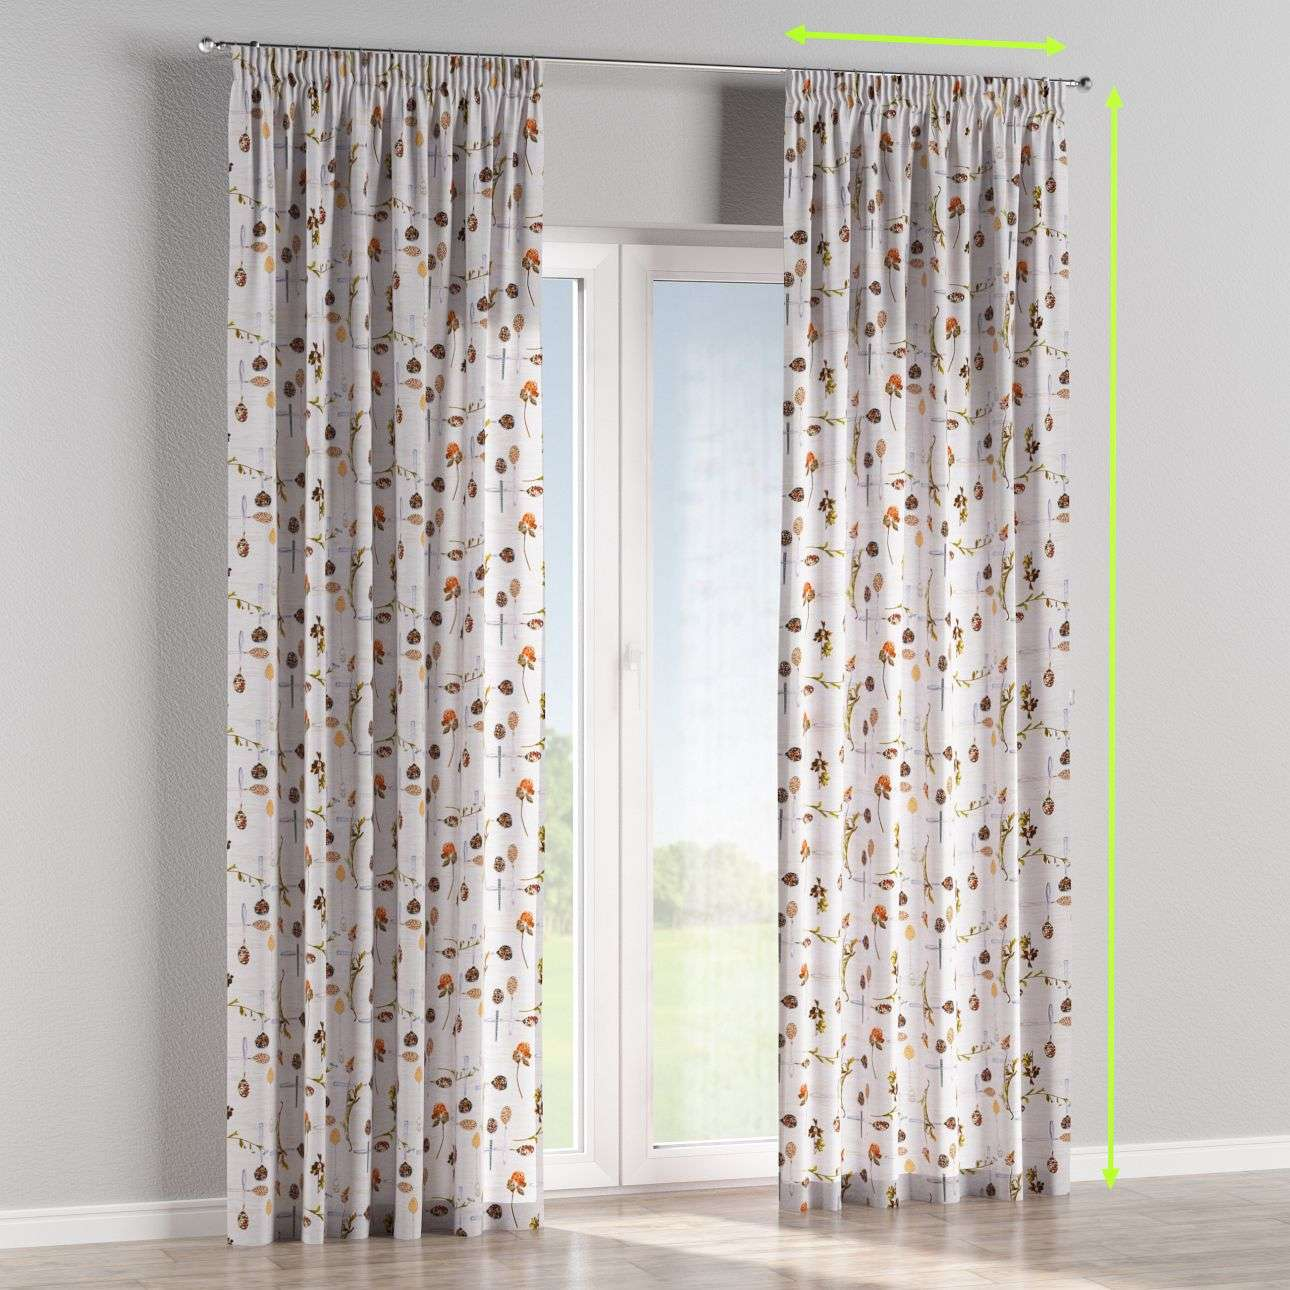 Pencil pleat lined curtains in collection Flowers, fabric: 140-11